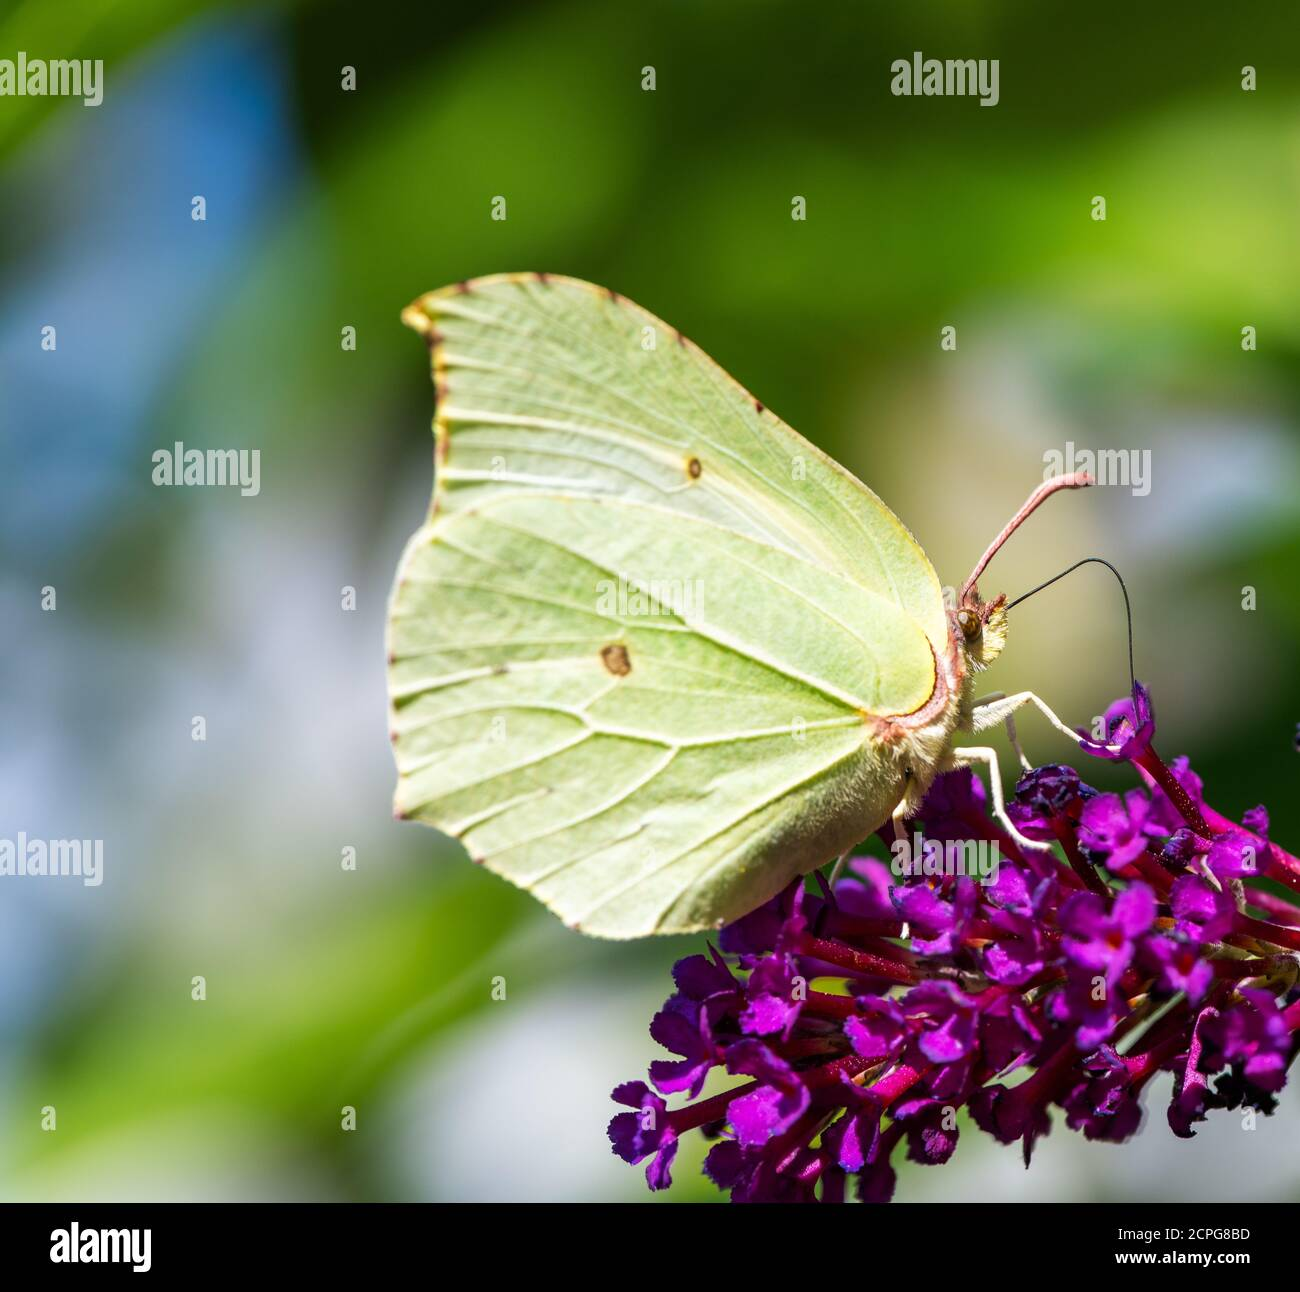 Brimstone butterfly on the blossoms of a buddleia bush Stock Photo